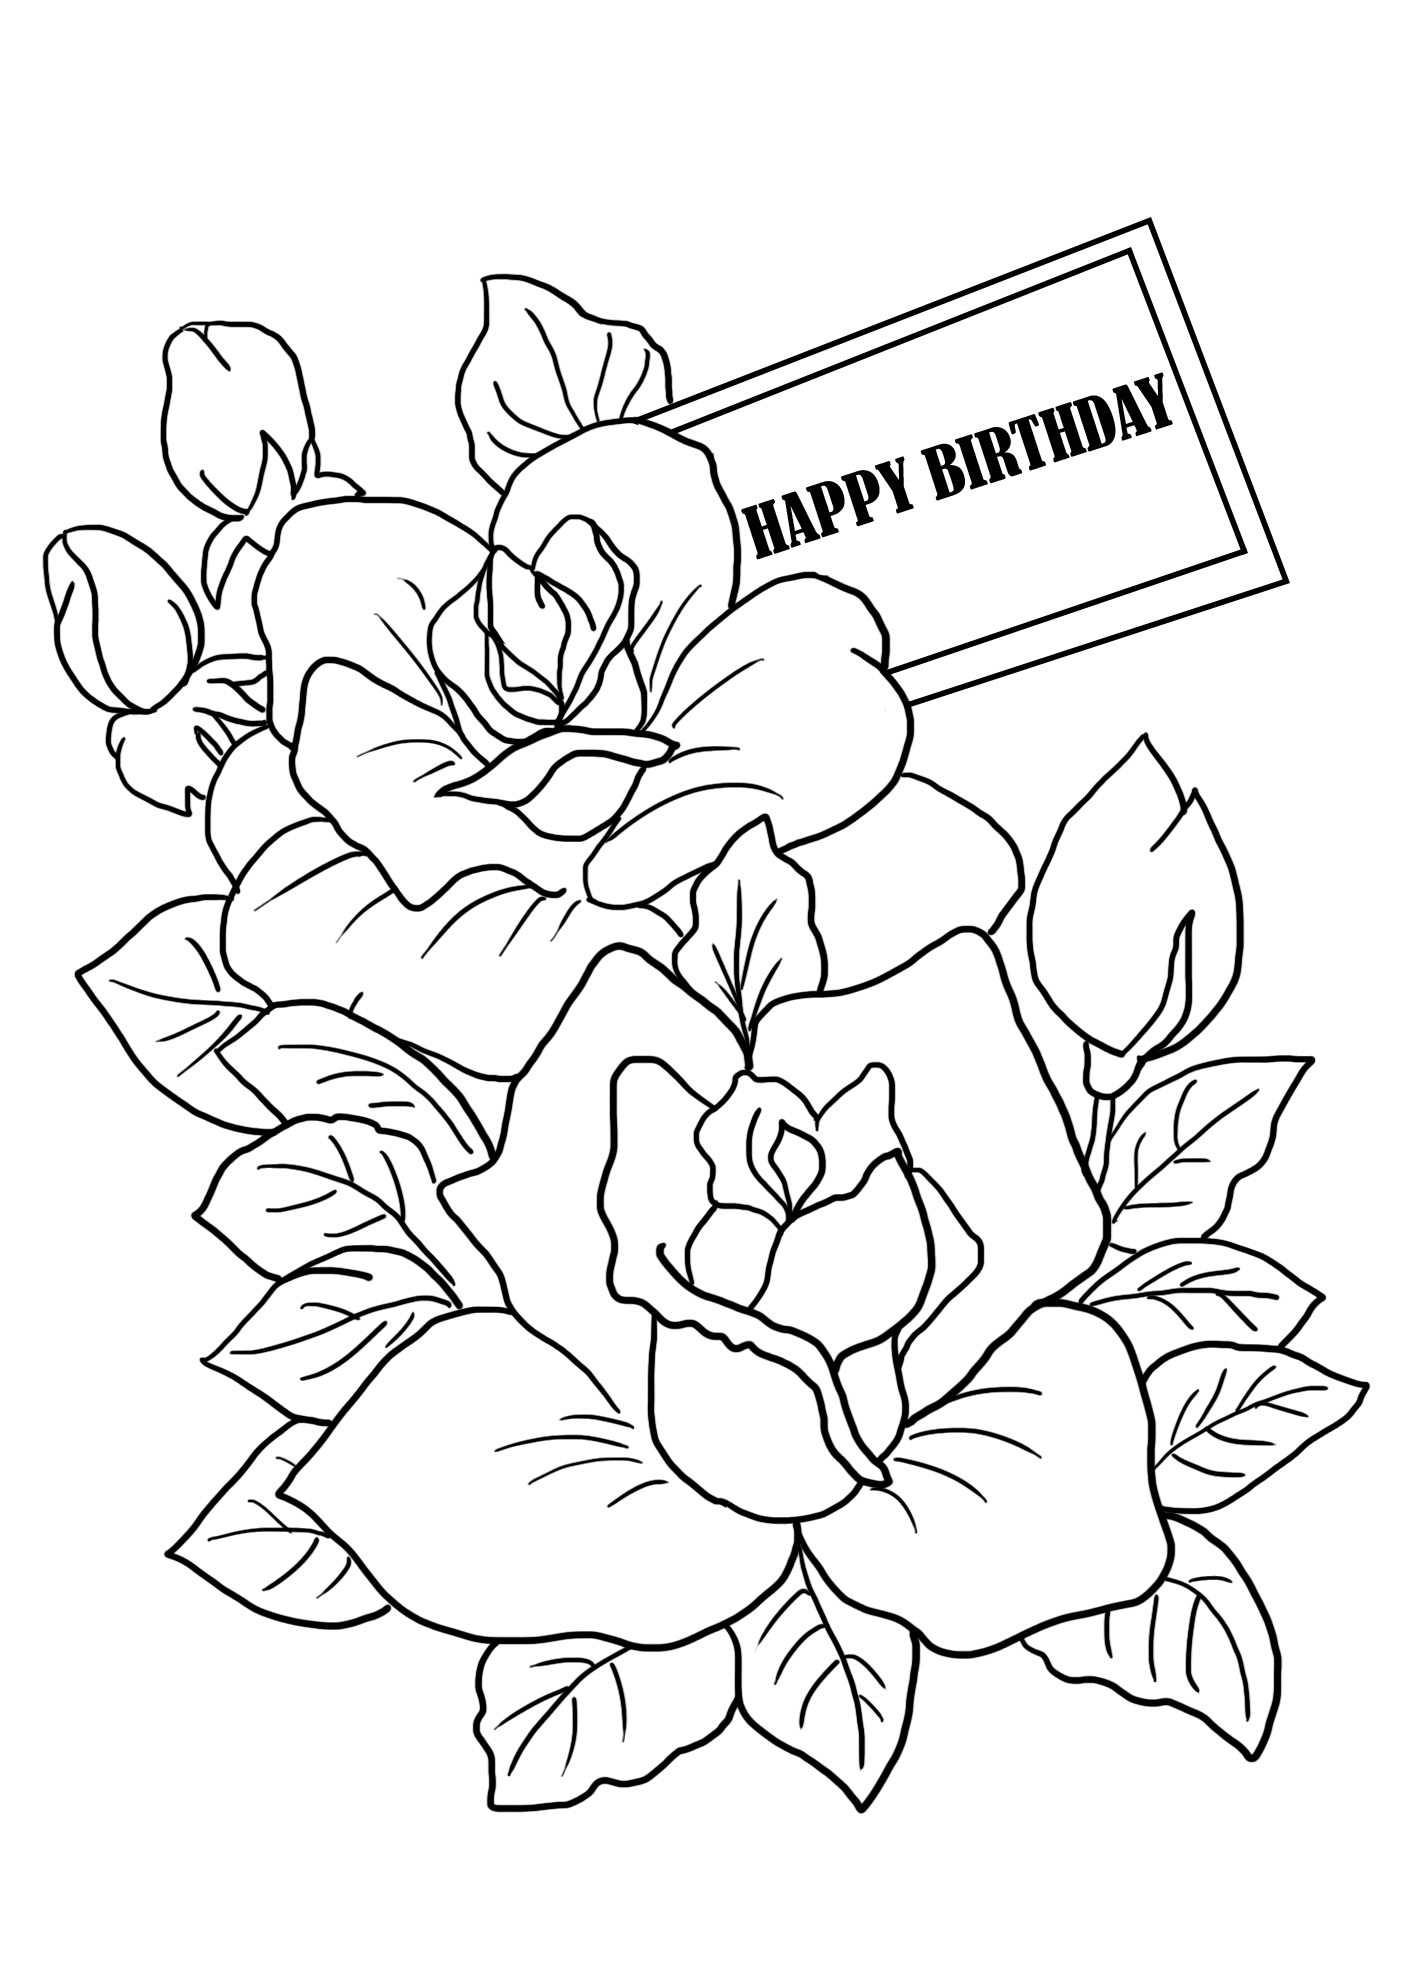 coloring printable birthday free easy to print happy birthday coloring pages tulamama printable birthday coloring